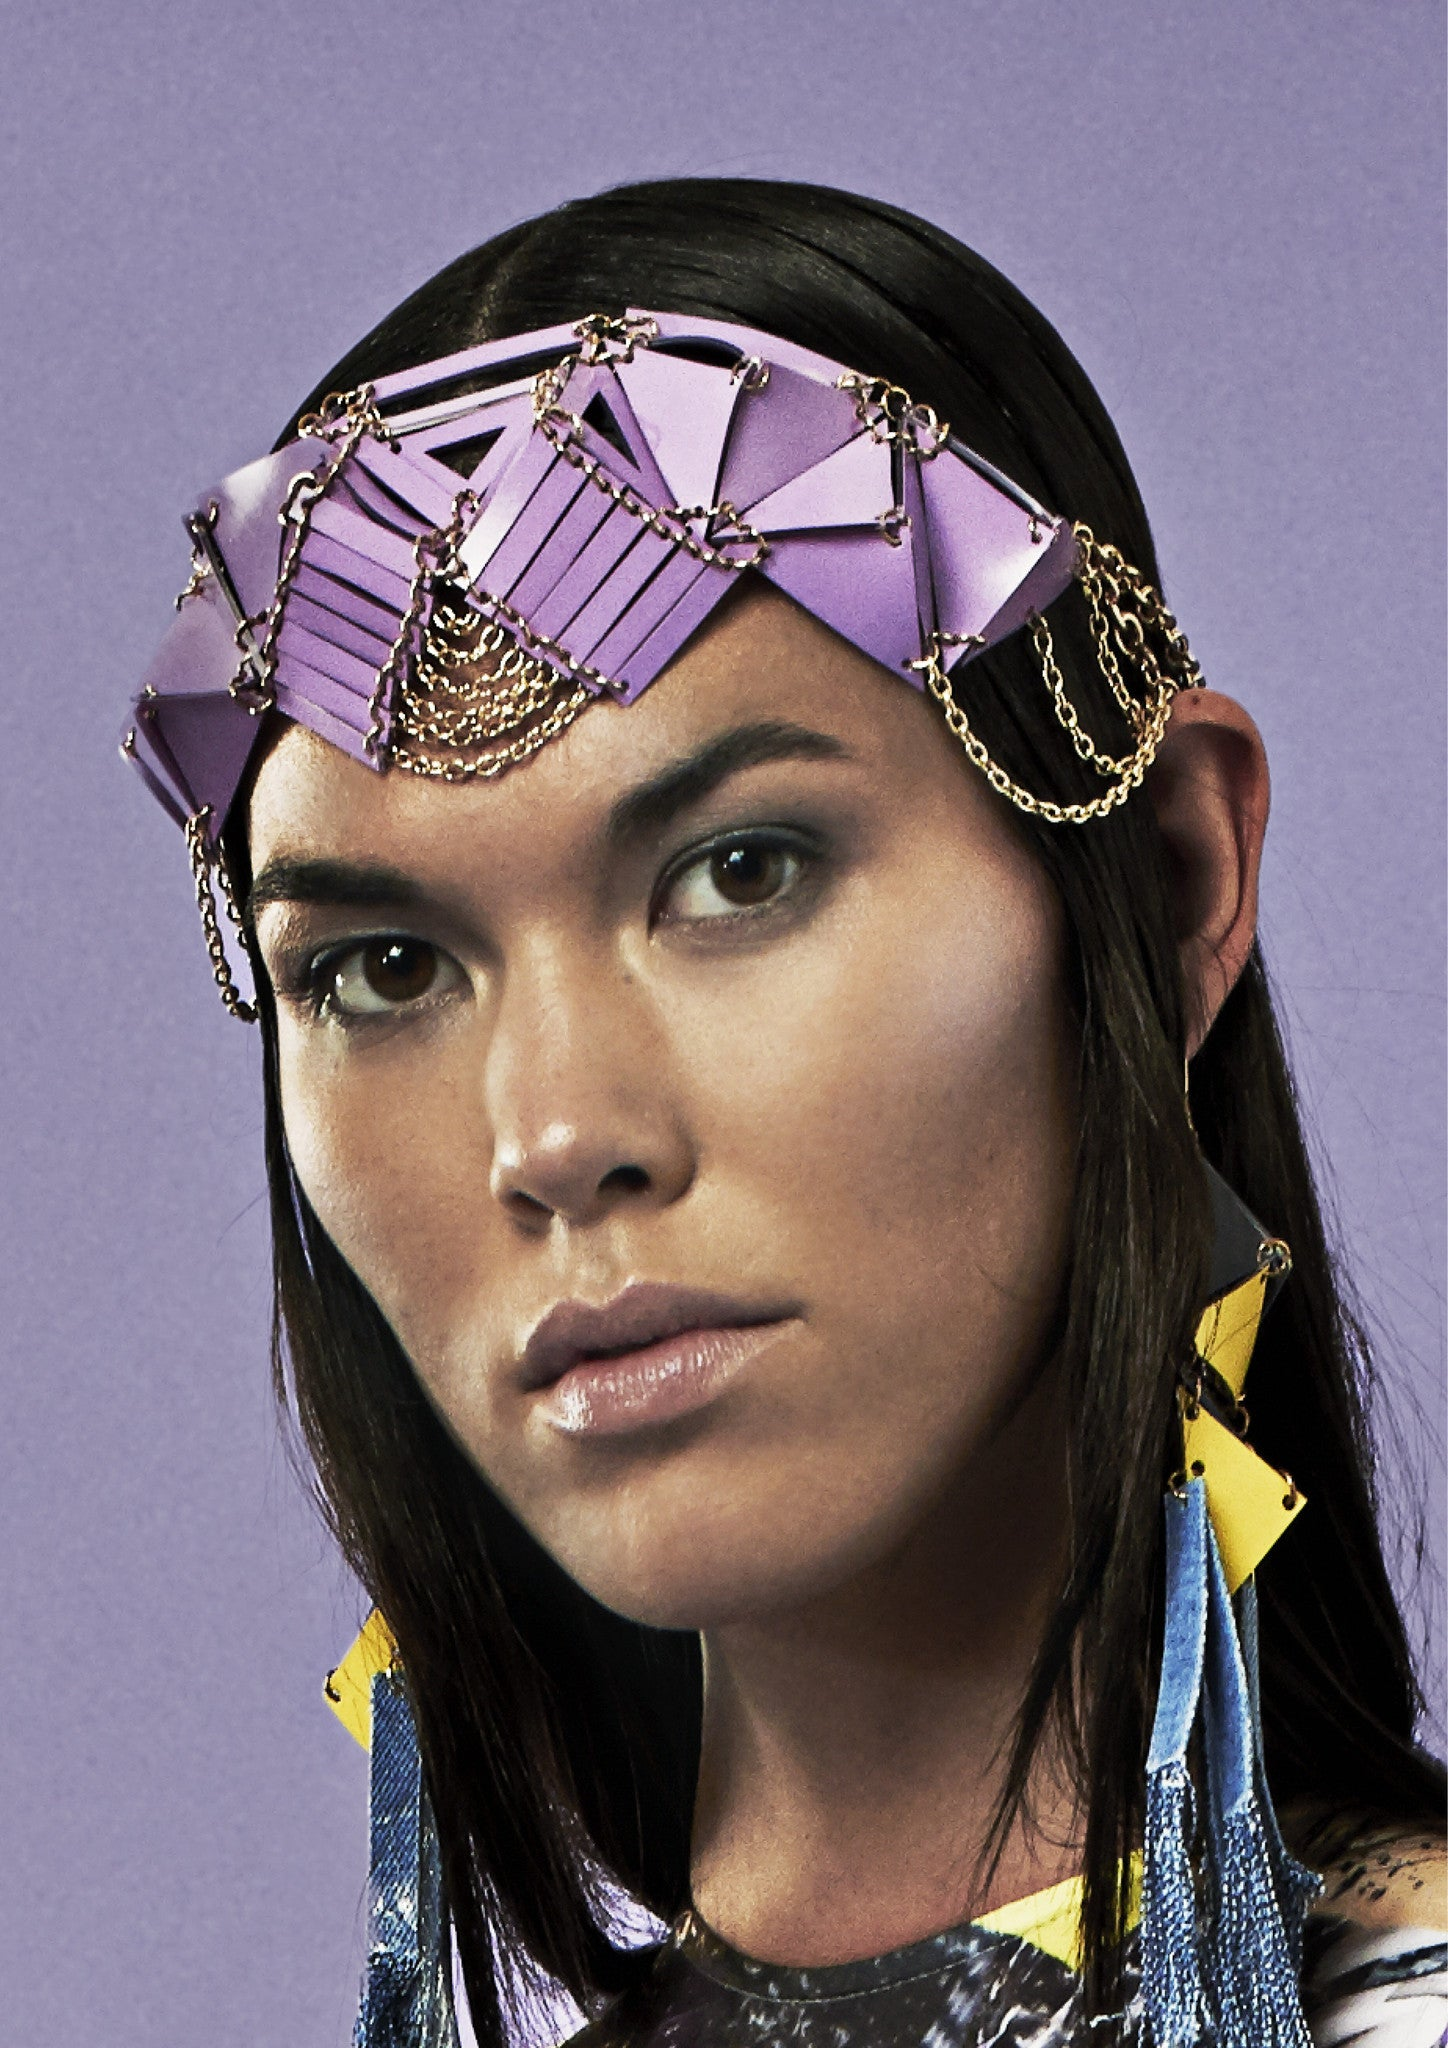 PYRAMID HEADPIECE